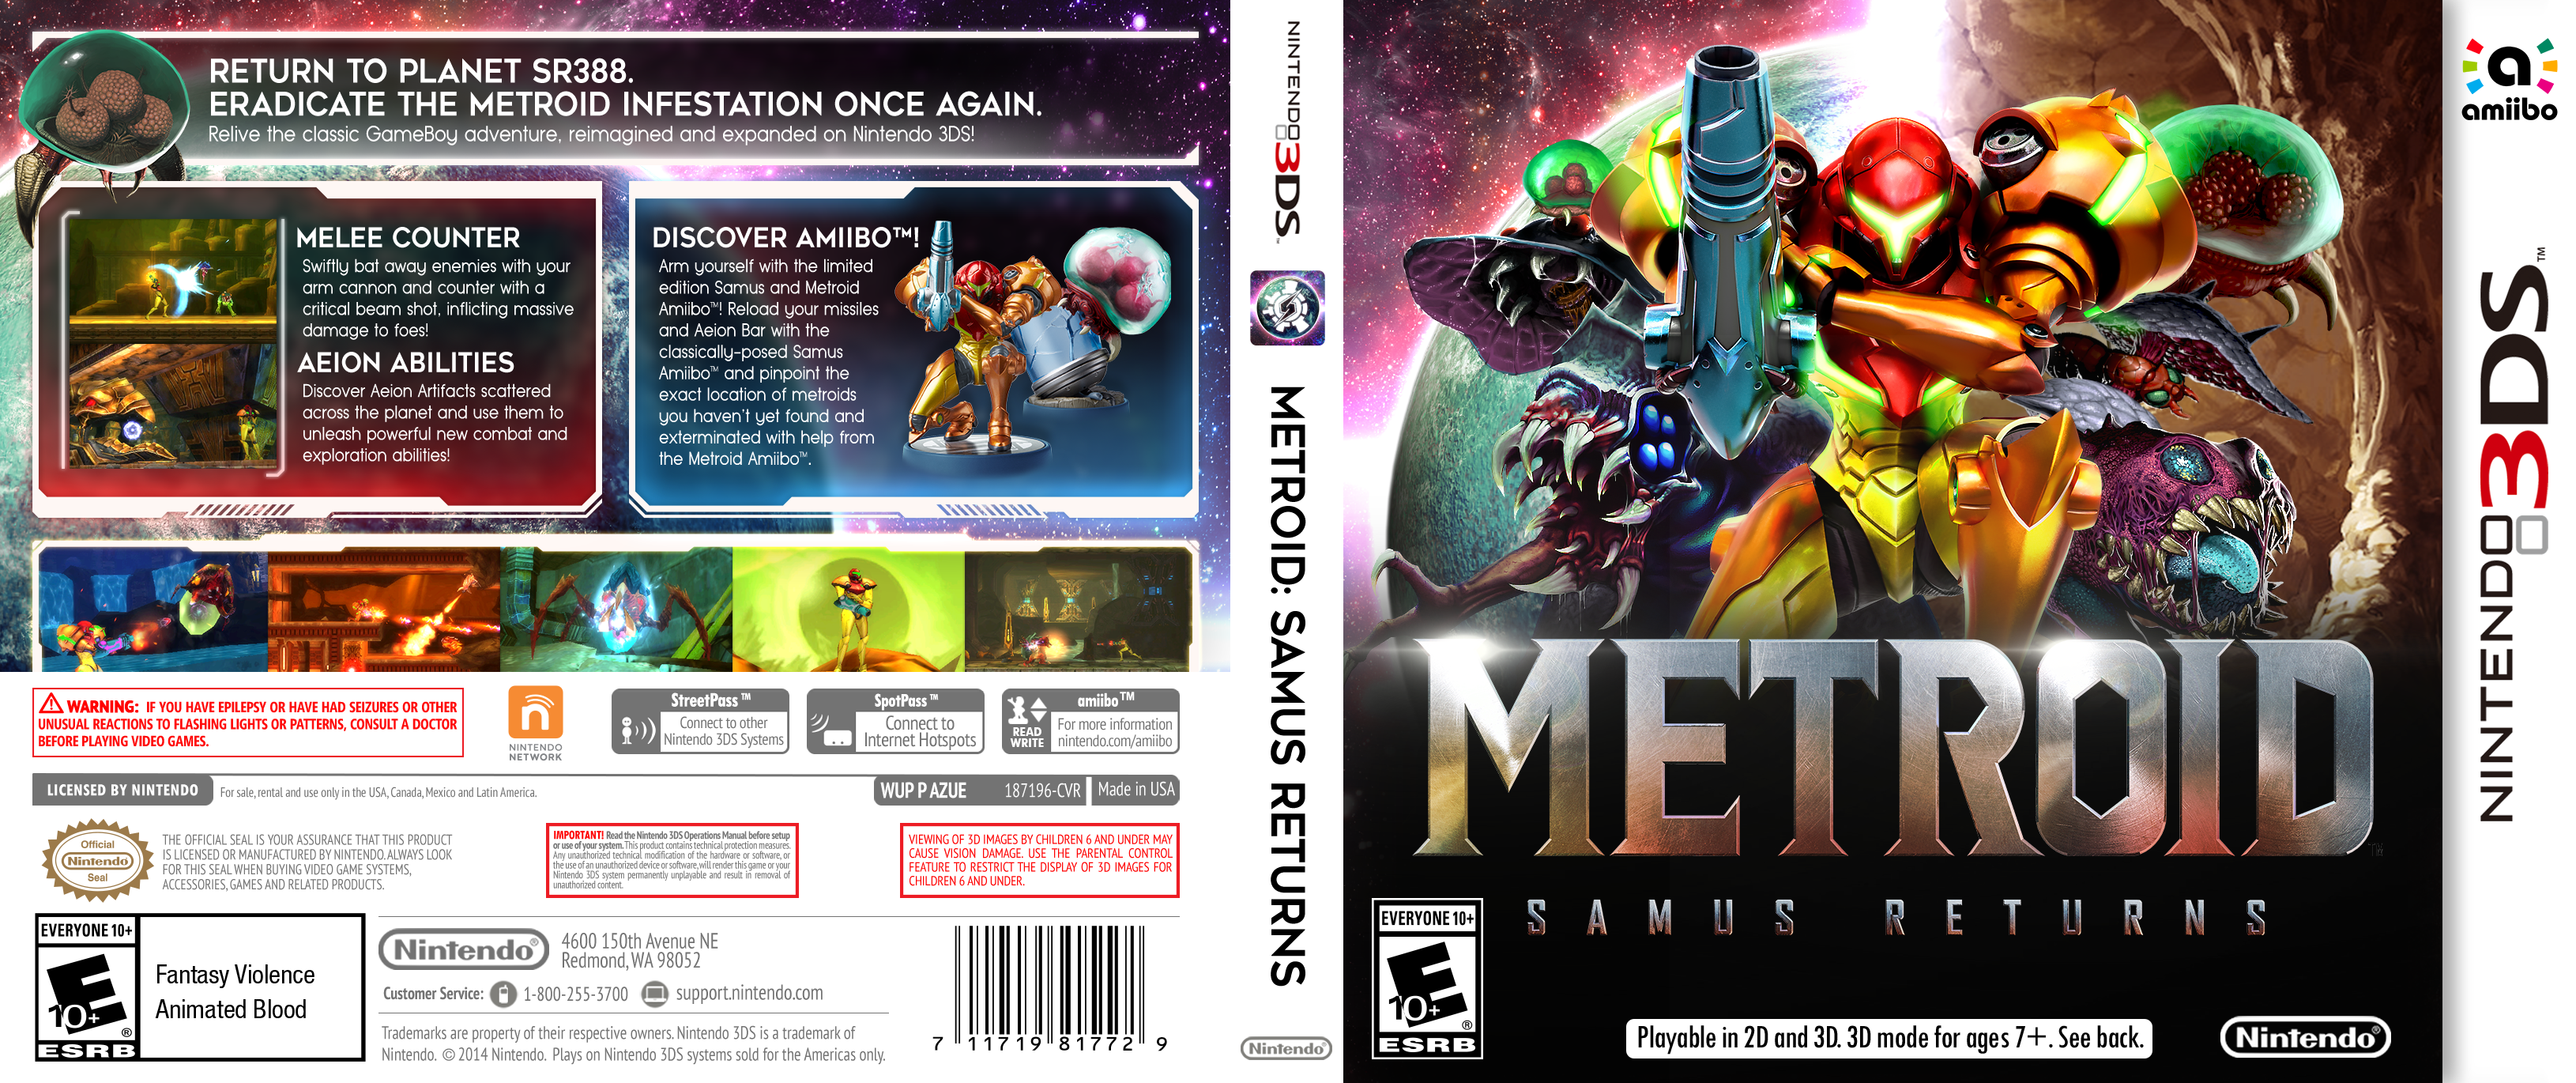 Calebs Art Thread Creative Corner Zelda Universe Forums 3ds Metroid Samus Returns Special Edition Reg Us Made This Recently